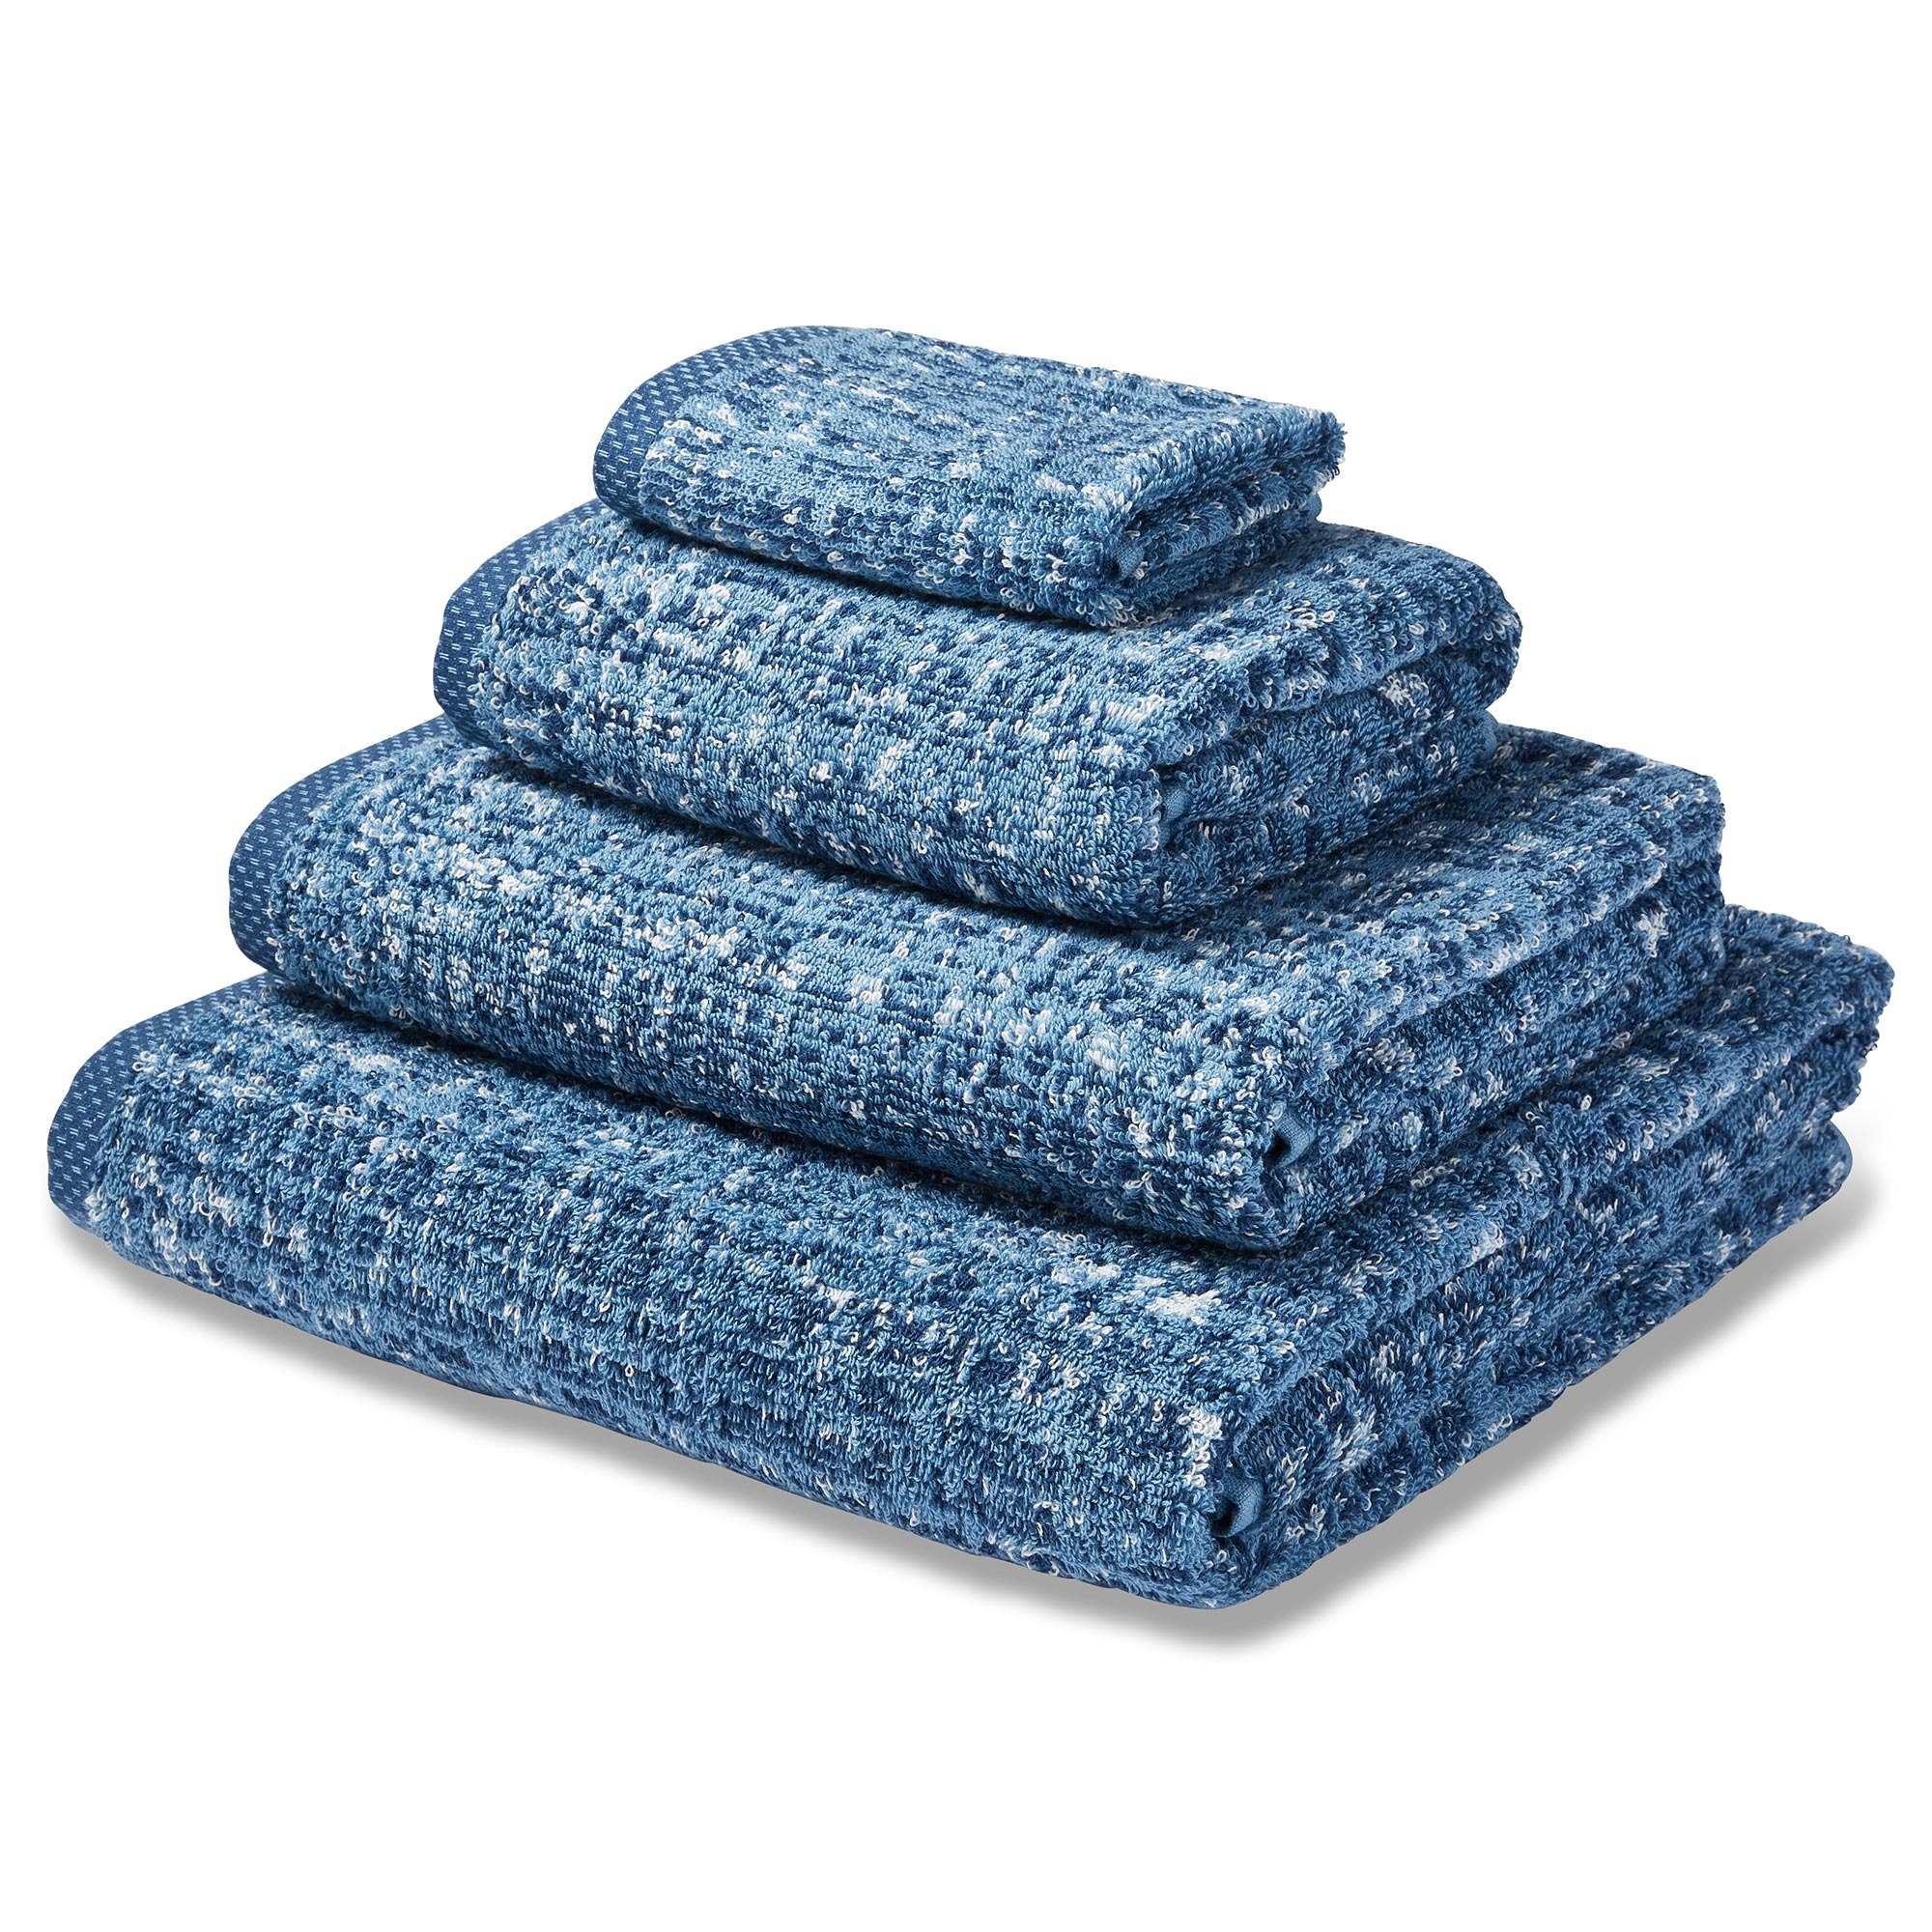 Photo of Regeneration indigo towel indigo blue